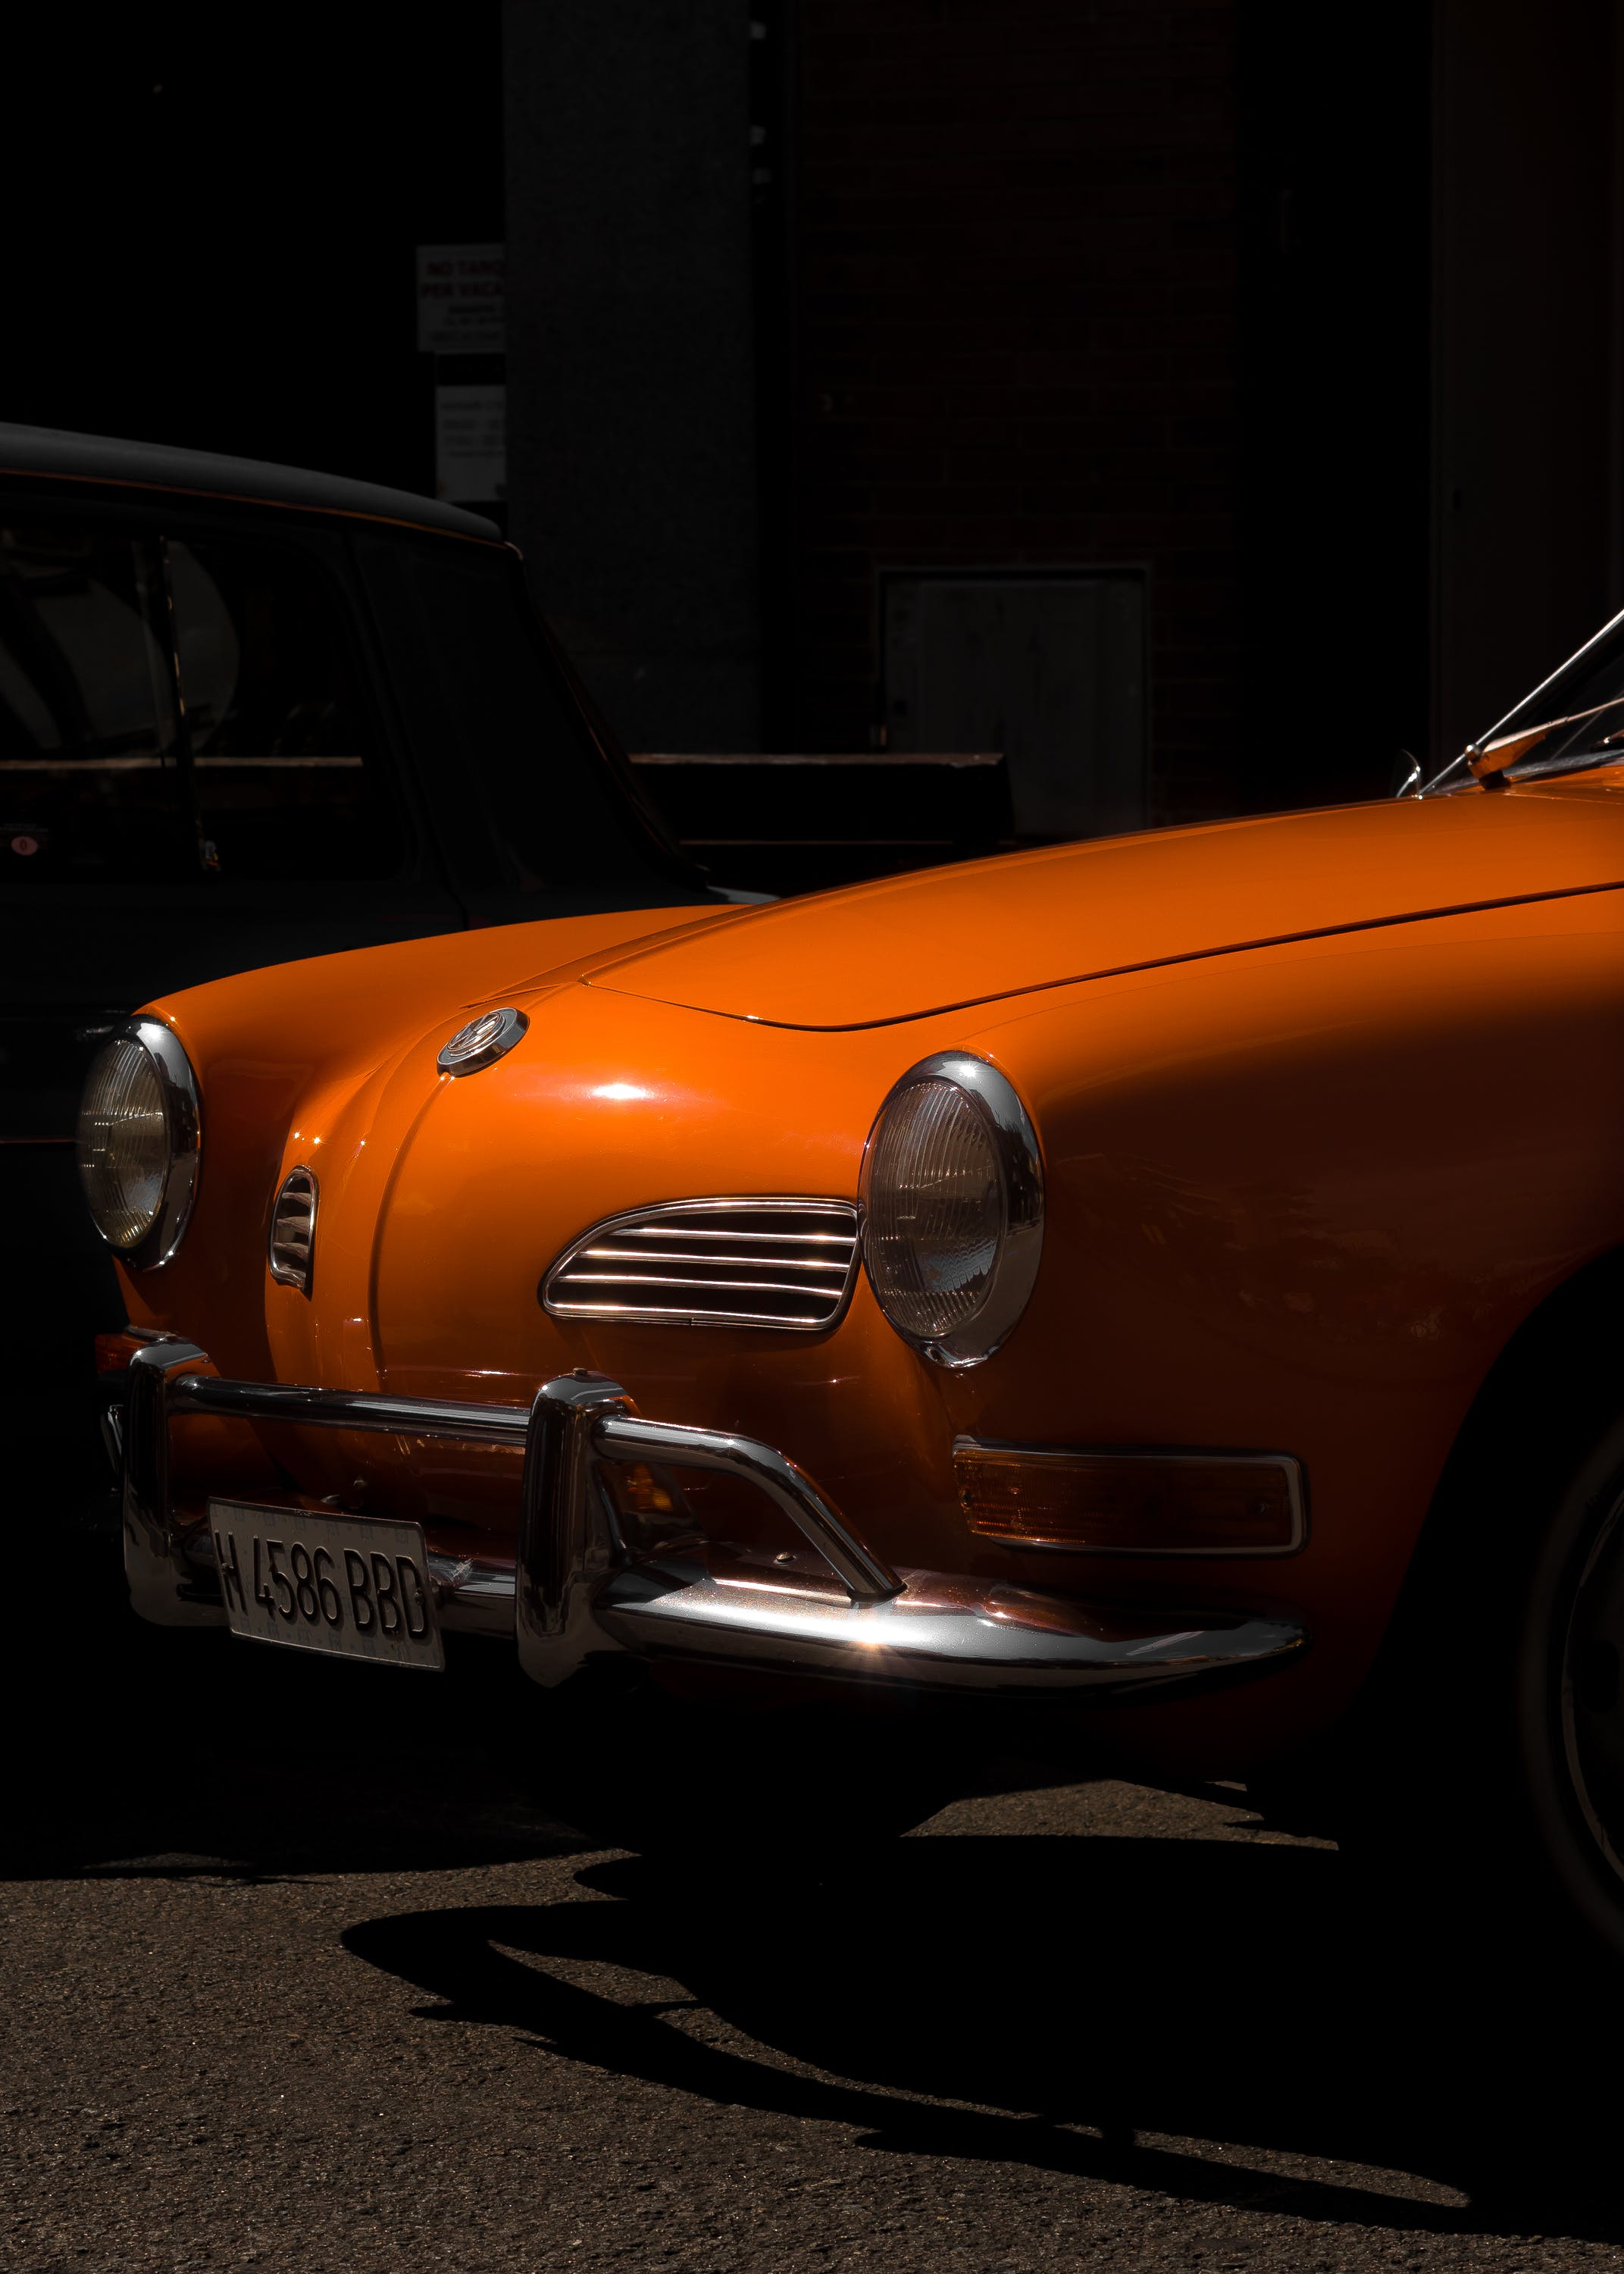 Orange Volkswagen Karmann Ghia Near Building